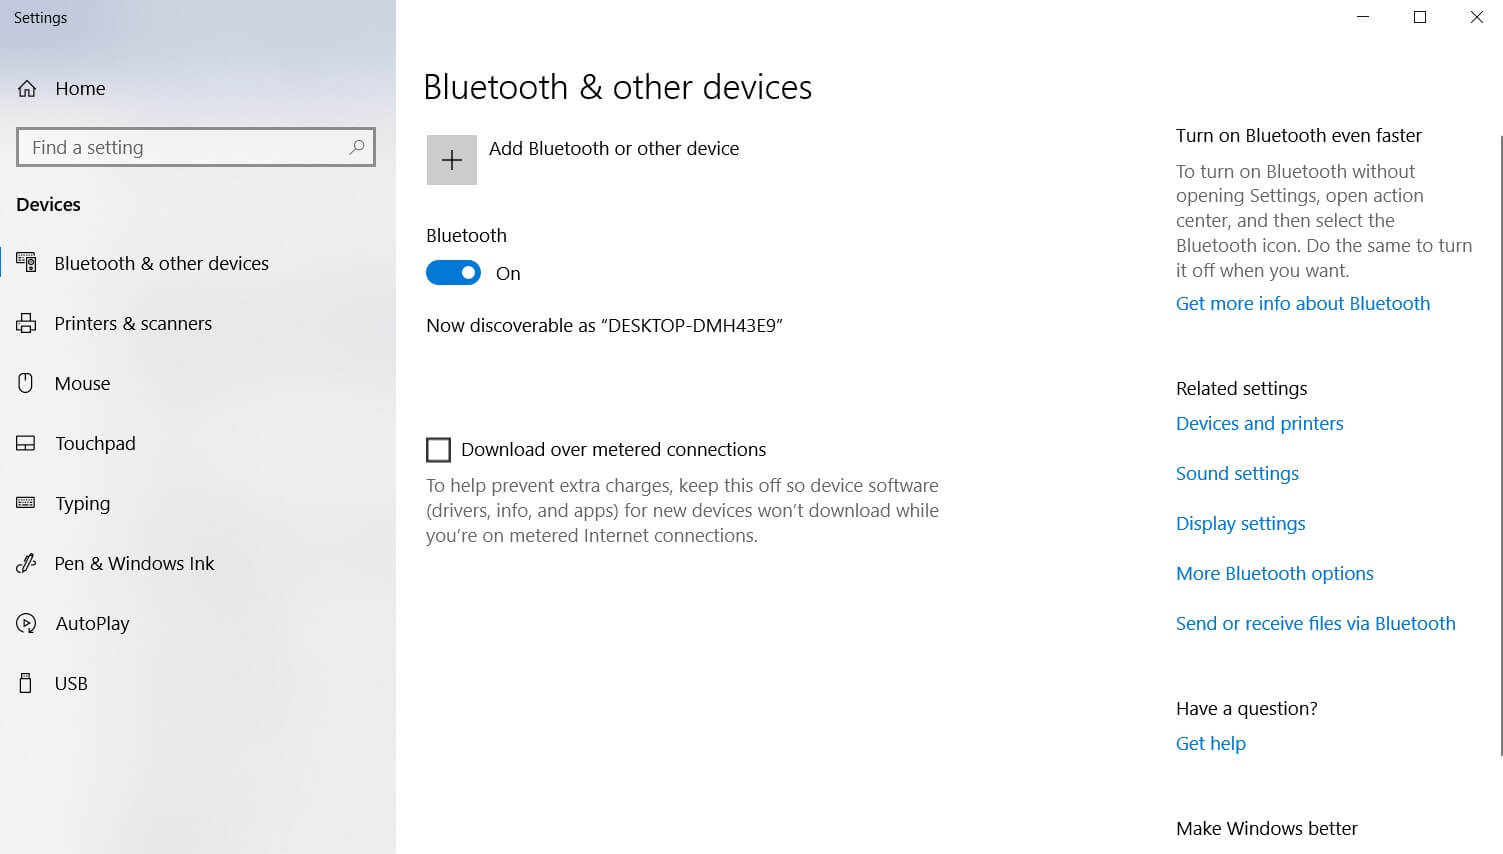 Bluetooth settings in Windows 10